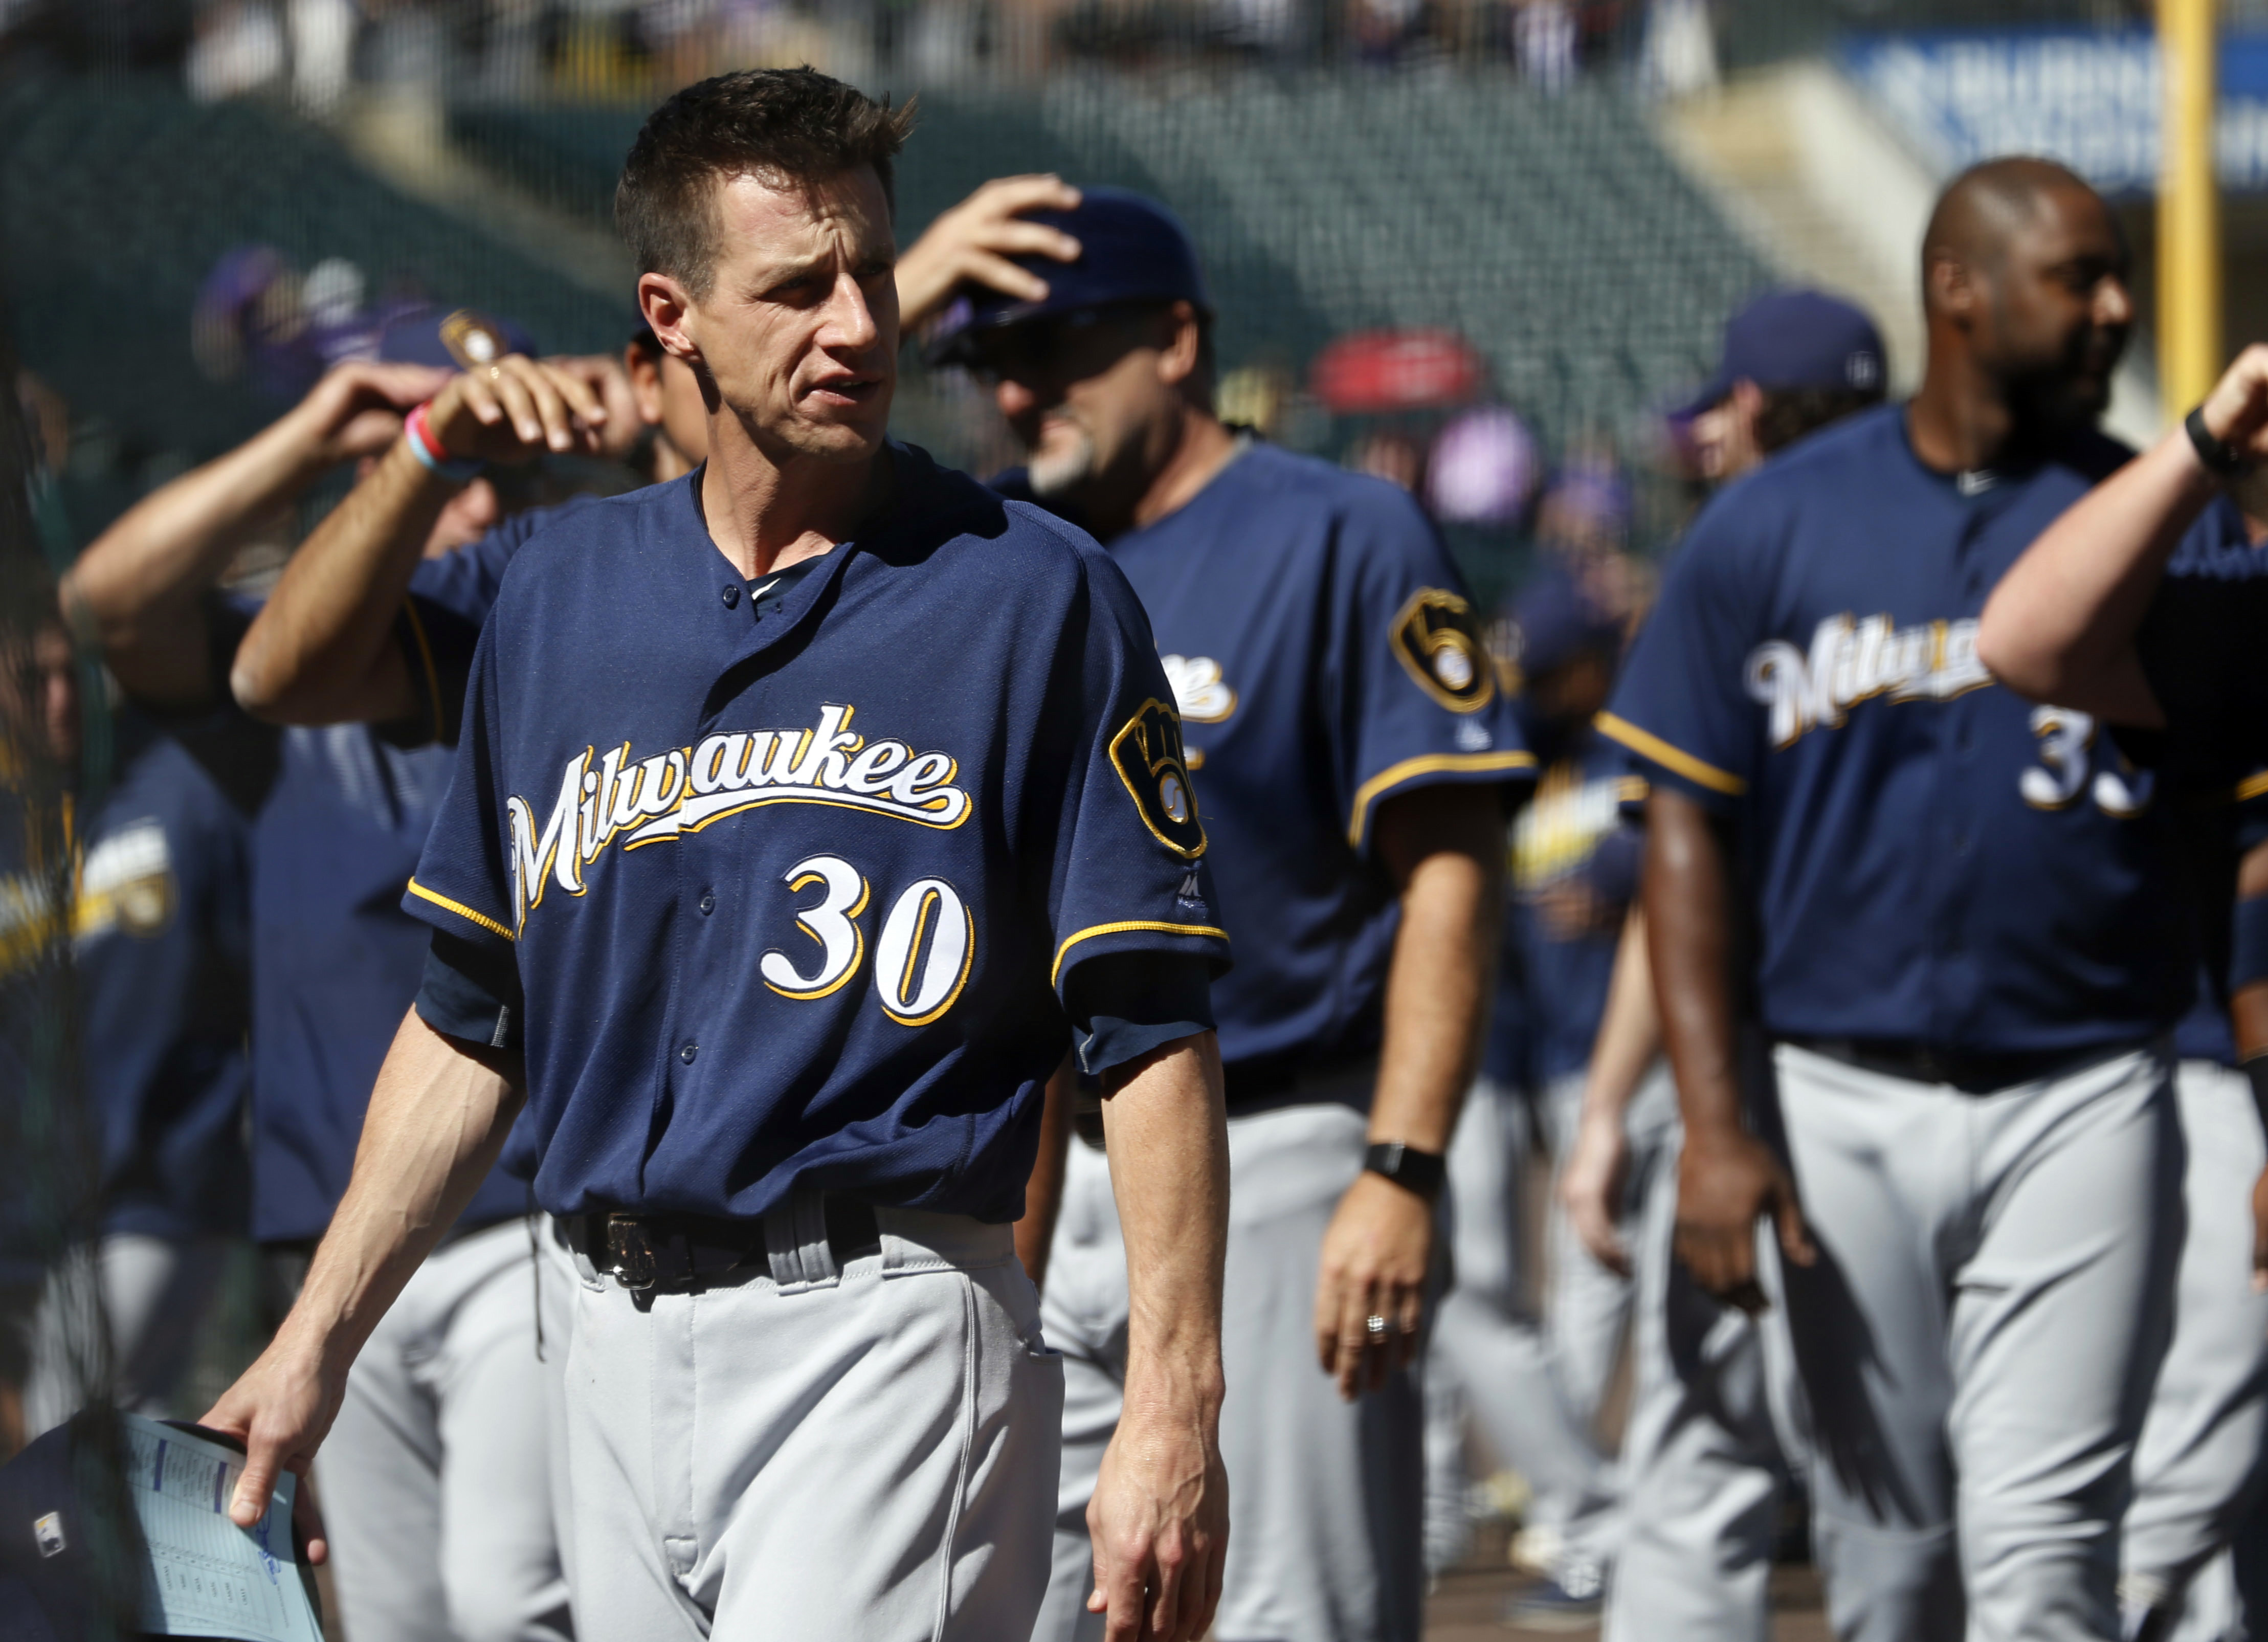 Milwaukee Brewers manager Craig Counsell leads his players back to the dugout after the playing of the national anthem before facing the Colorado Rockies in a baseball game Sunday, Oct. 2, 2016, in Denver. (AP Photo/David Zalubowski)